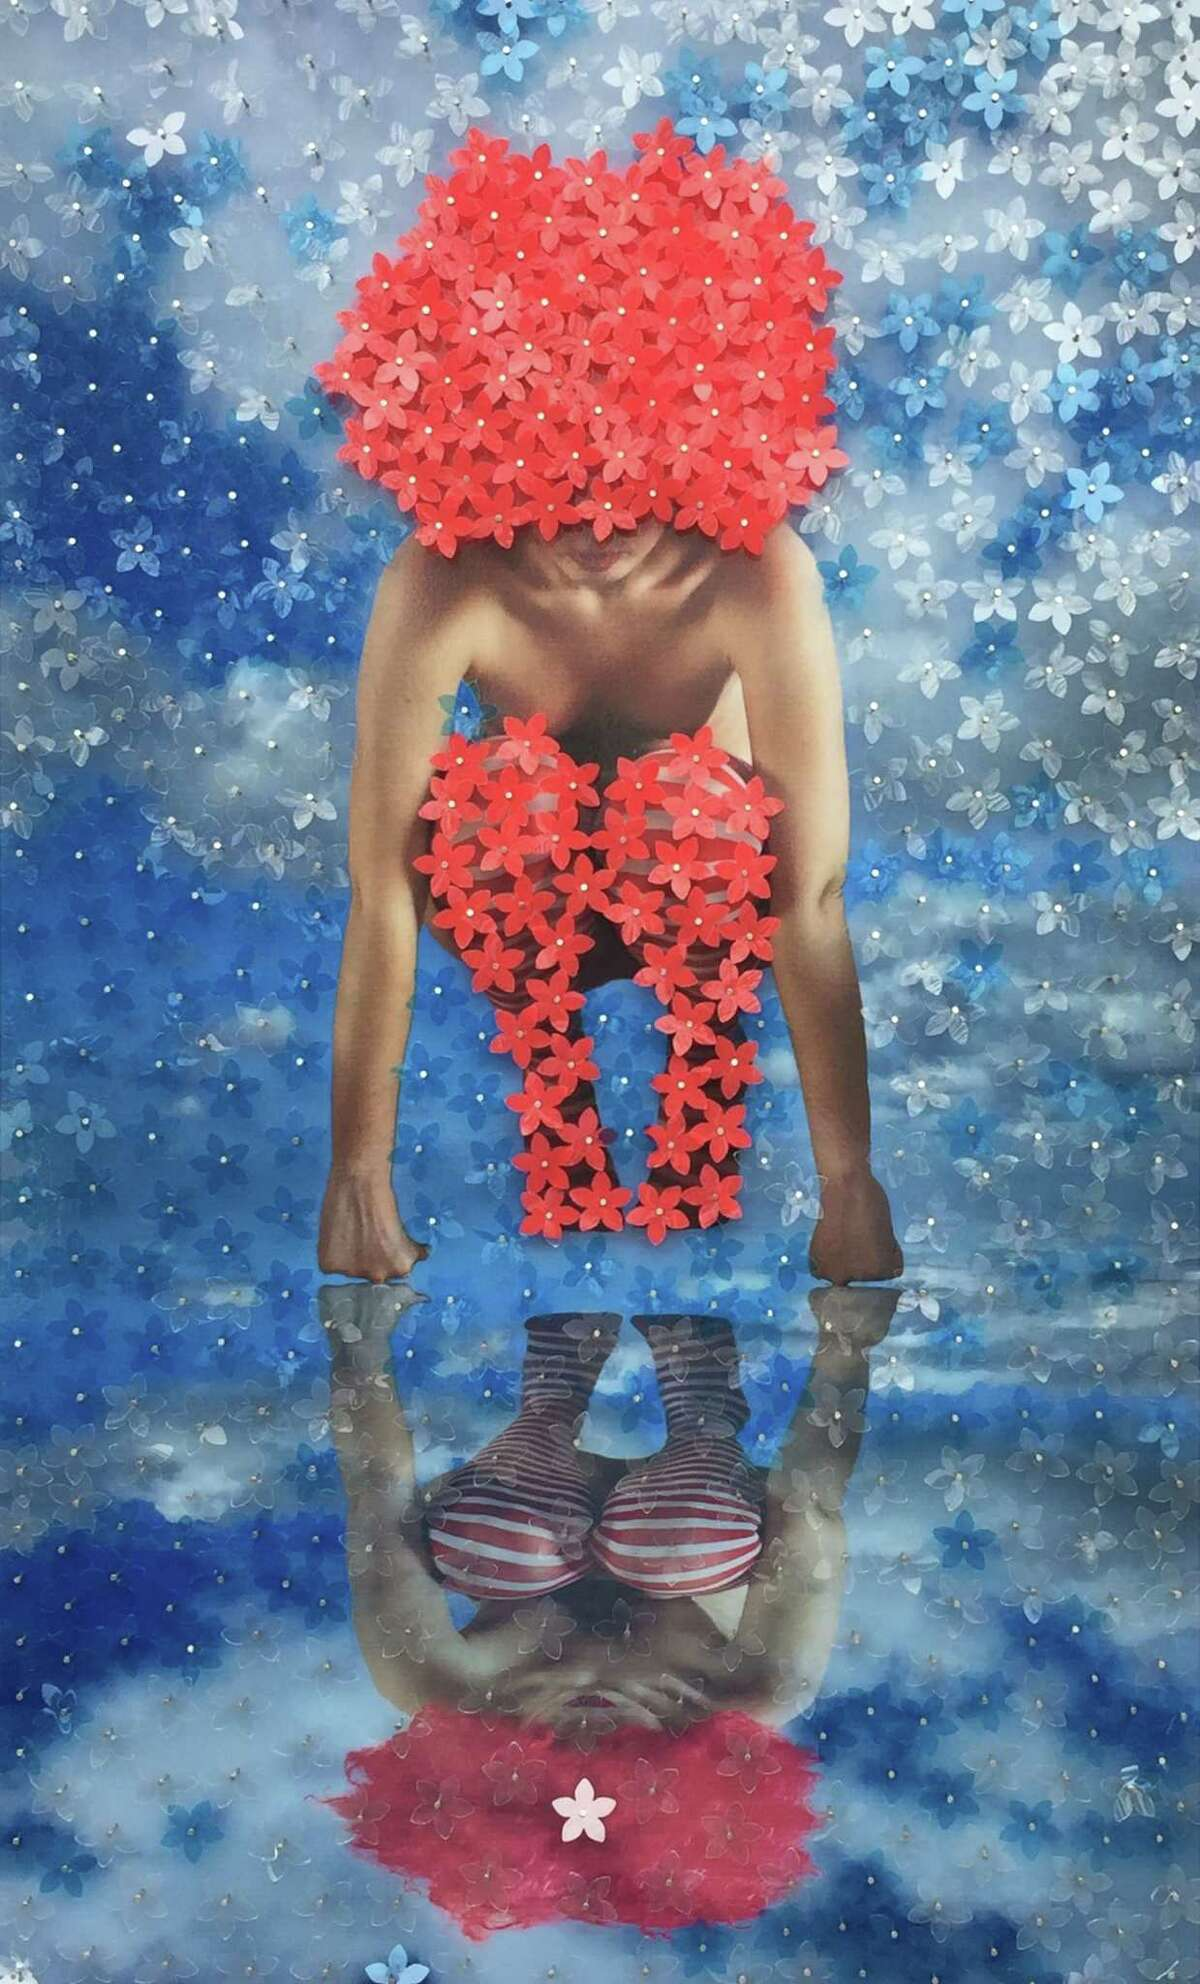 """""""Reflected,"""" a digital image by Mabel Poblet Pujol, will be on display in the new Two Steps Forward: Contemporary Cuban Art"""" exhibition at the Westport Arts Center."""